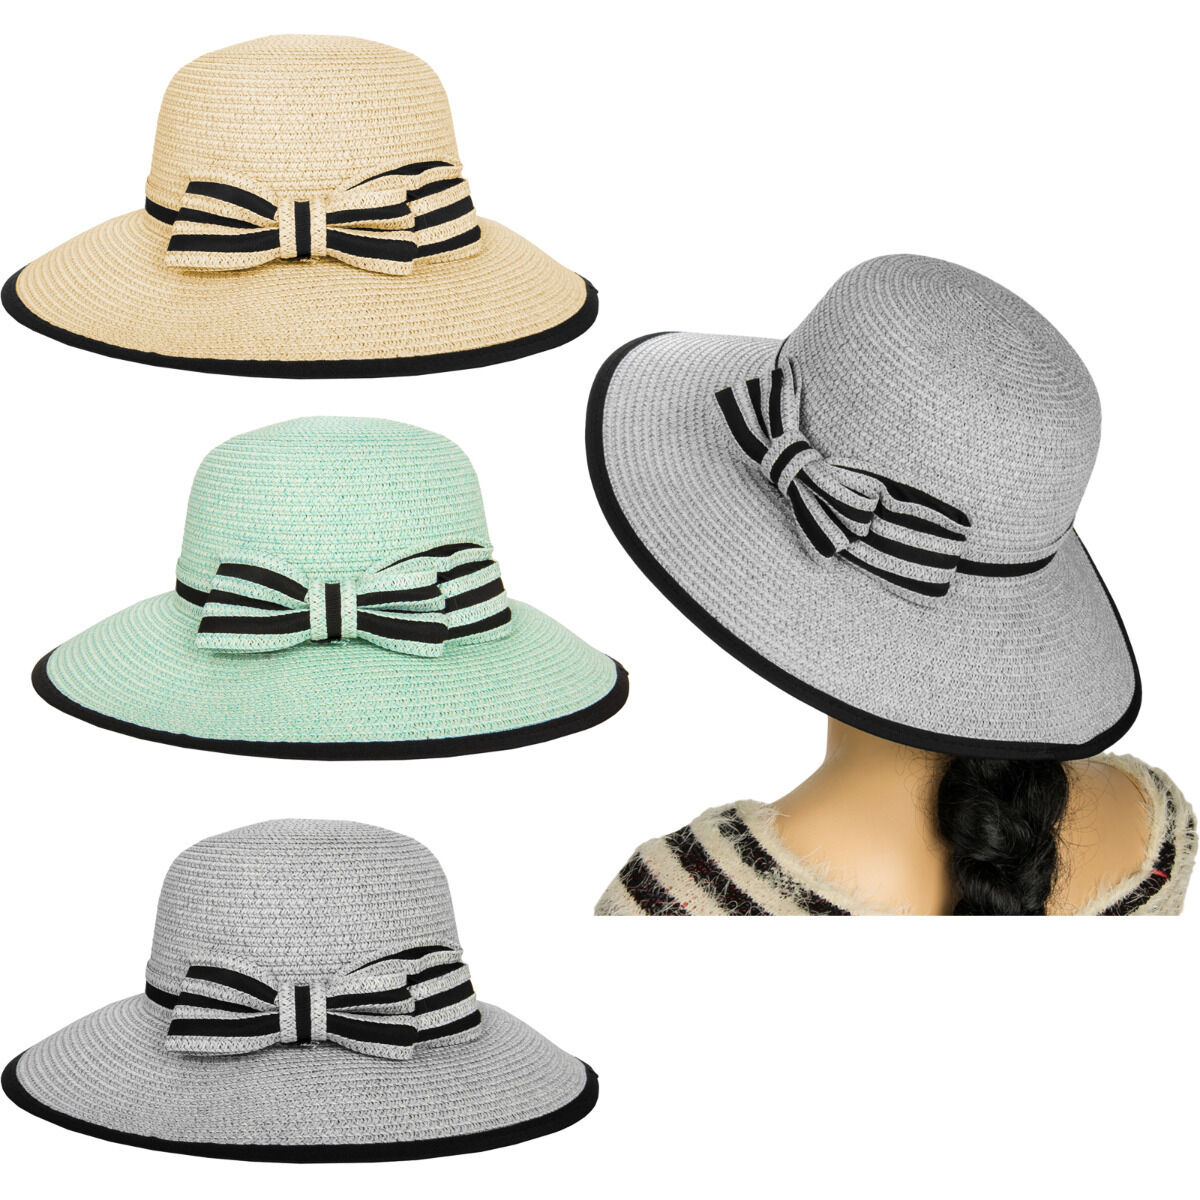 Details about Aerusi Women Ladies Panama Wide Brim Straw Sun Floppy Hat  with Ribbon Tie Band b1d696951bc